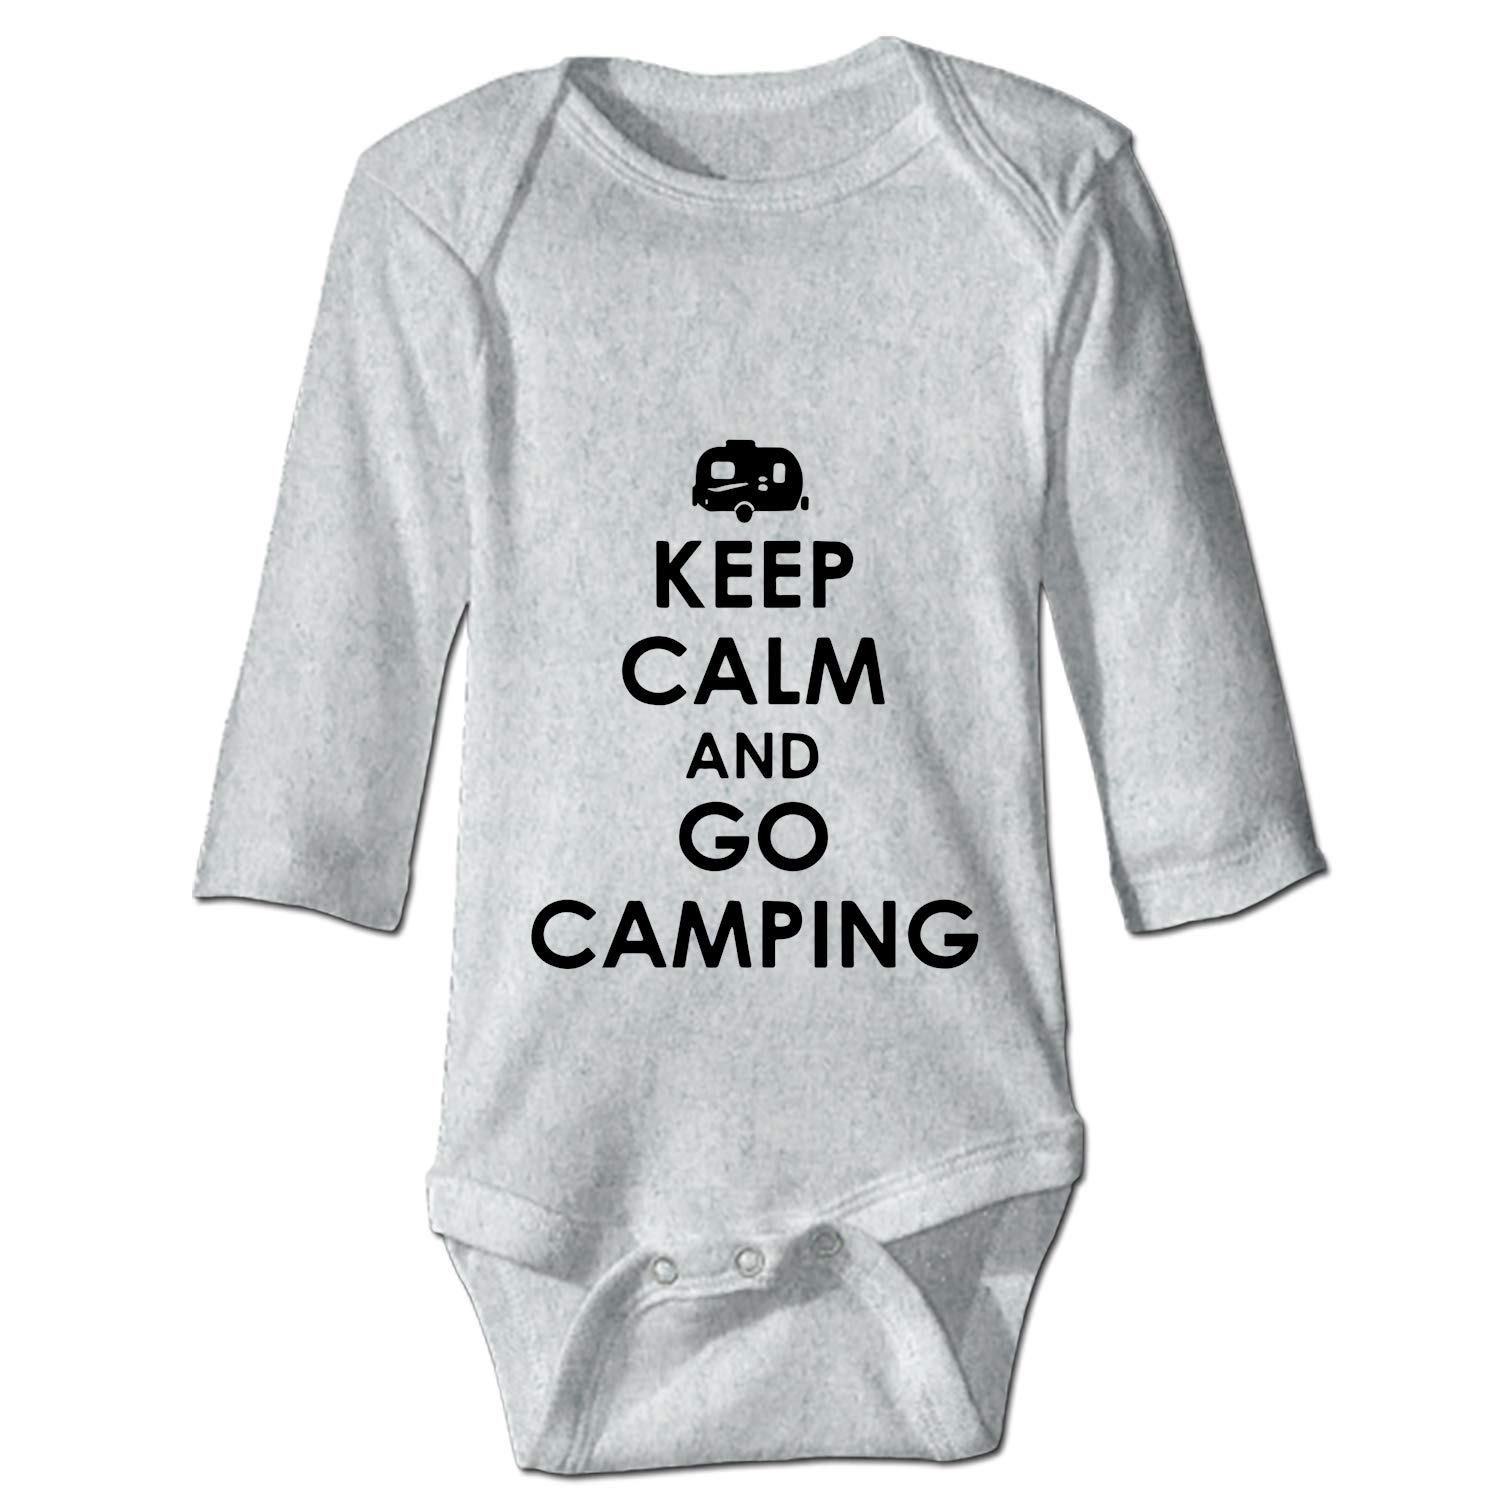 YSKHDBC Keep Calm and Boldly Go Onesies Long Sleeve Home Outfit for Baby Boys Girls